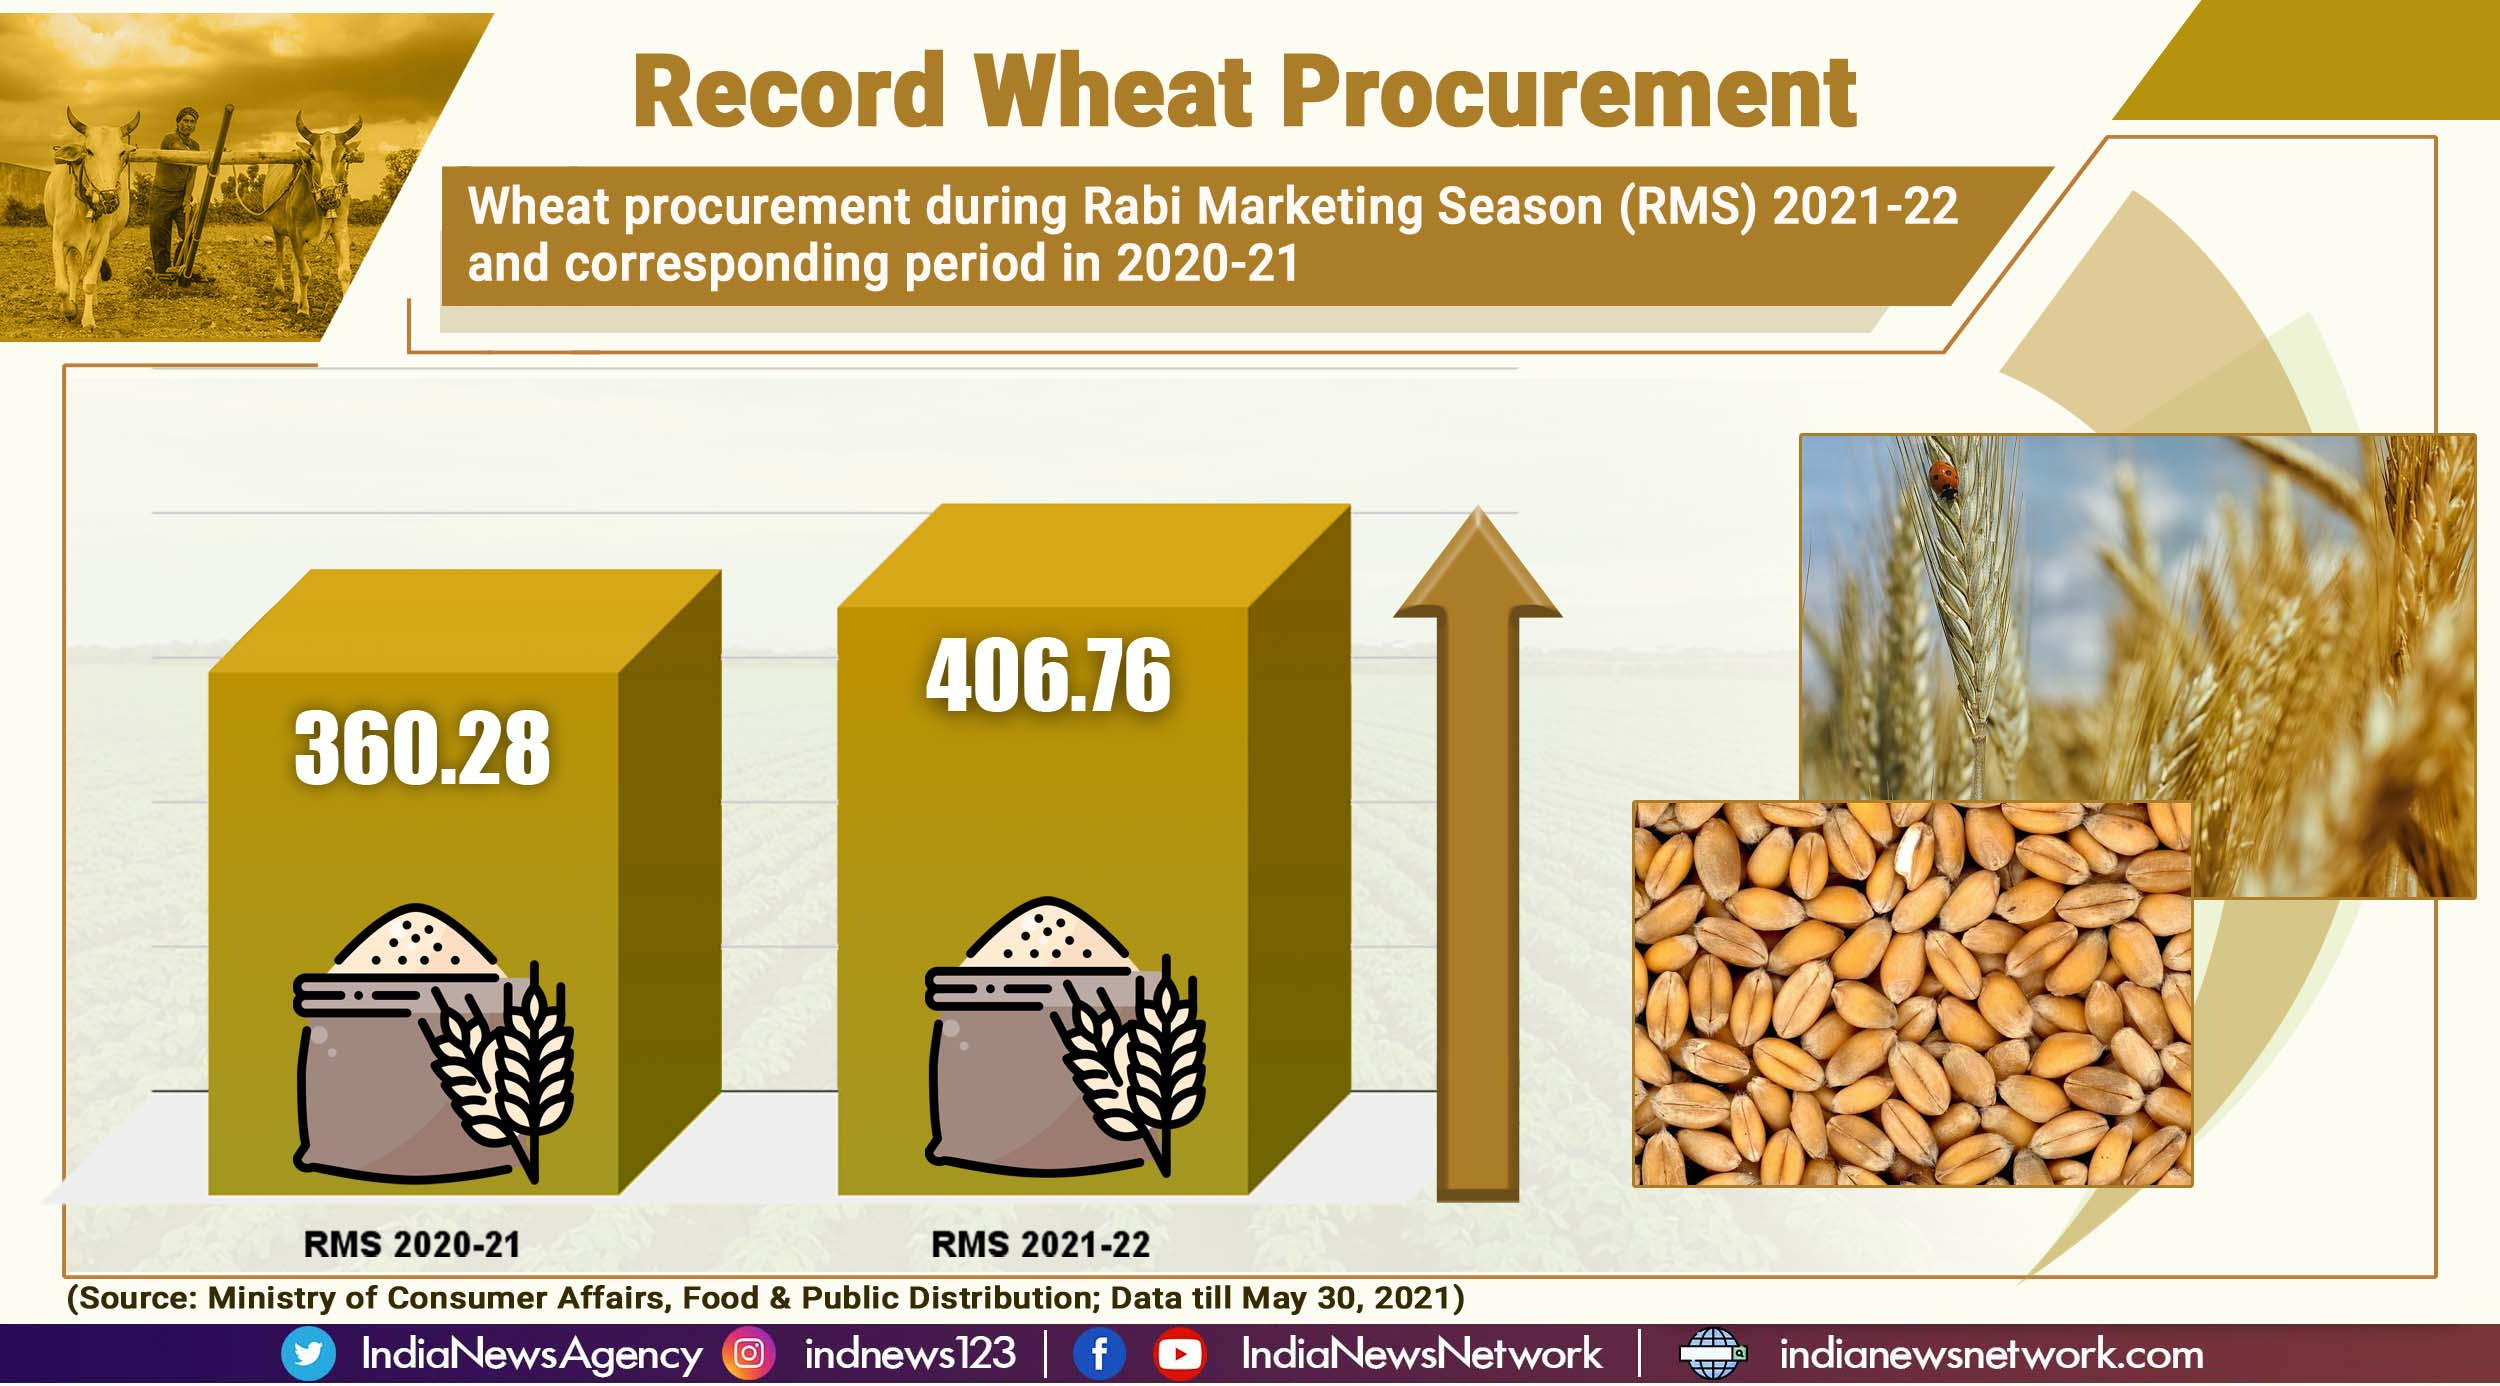 13% more wheat procured over corresponding period last year